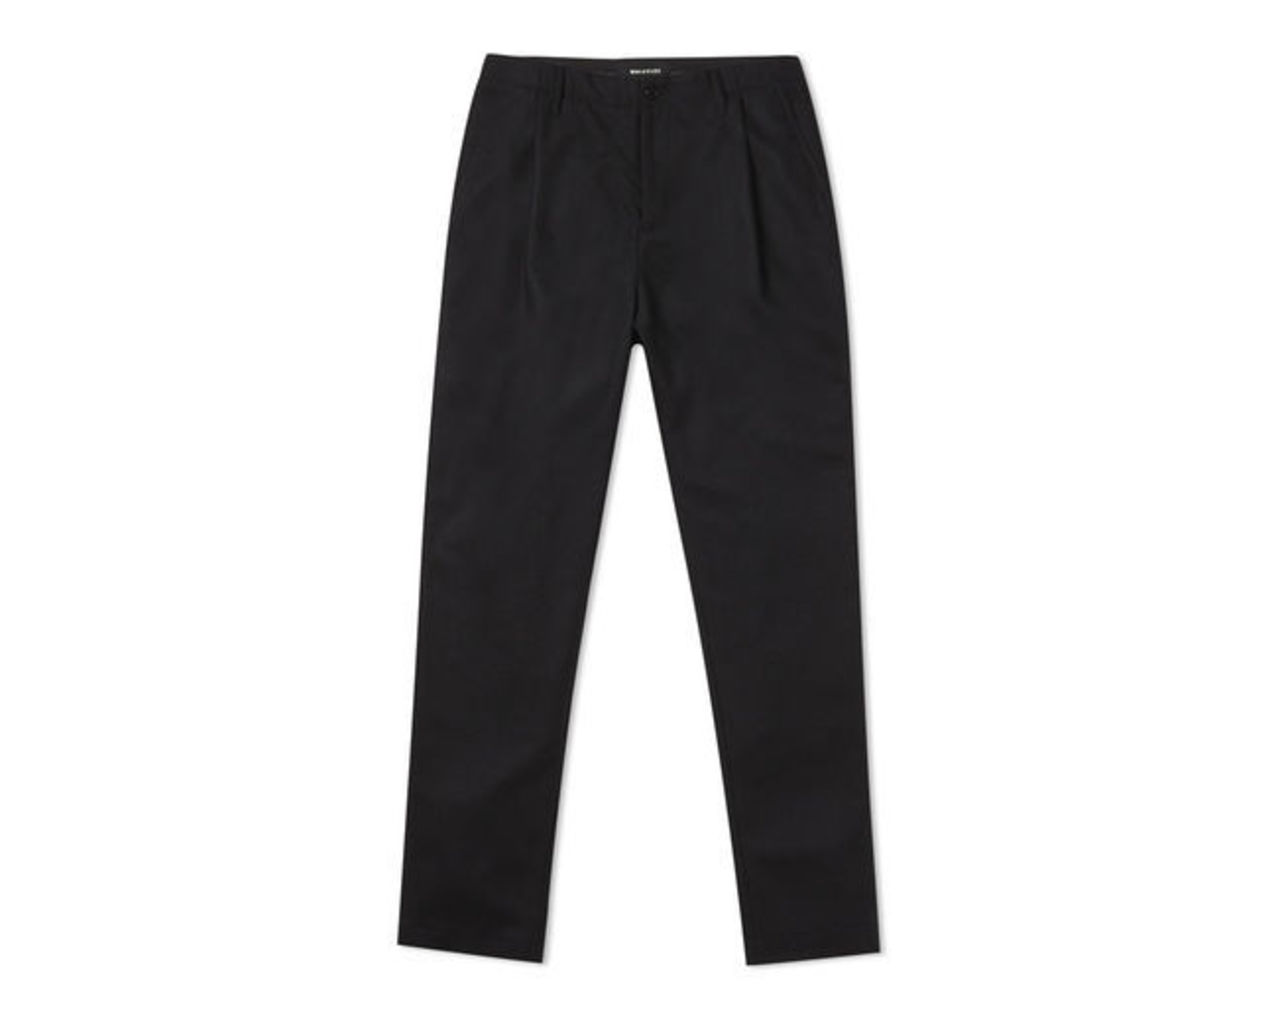 Pleat-Fronted Trousers